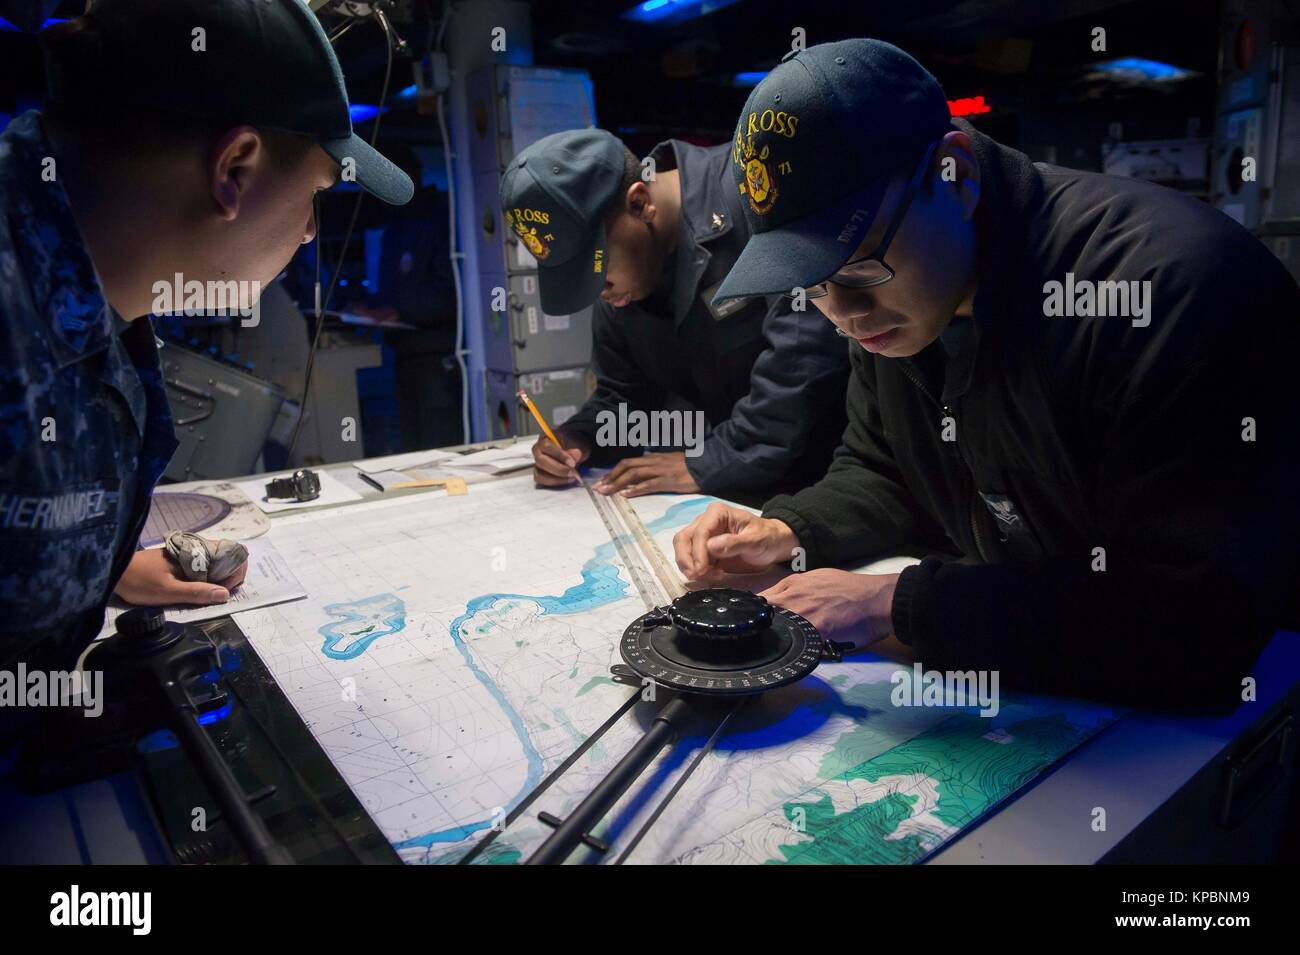 U.S. Navy sailors aboard the U.S. Navy Arleigh Burke-class guided-missile destroyer USS Ross work on plotting and - Stock Image